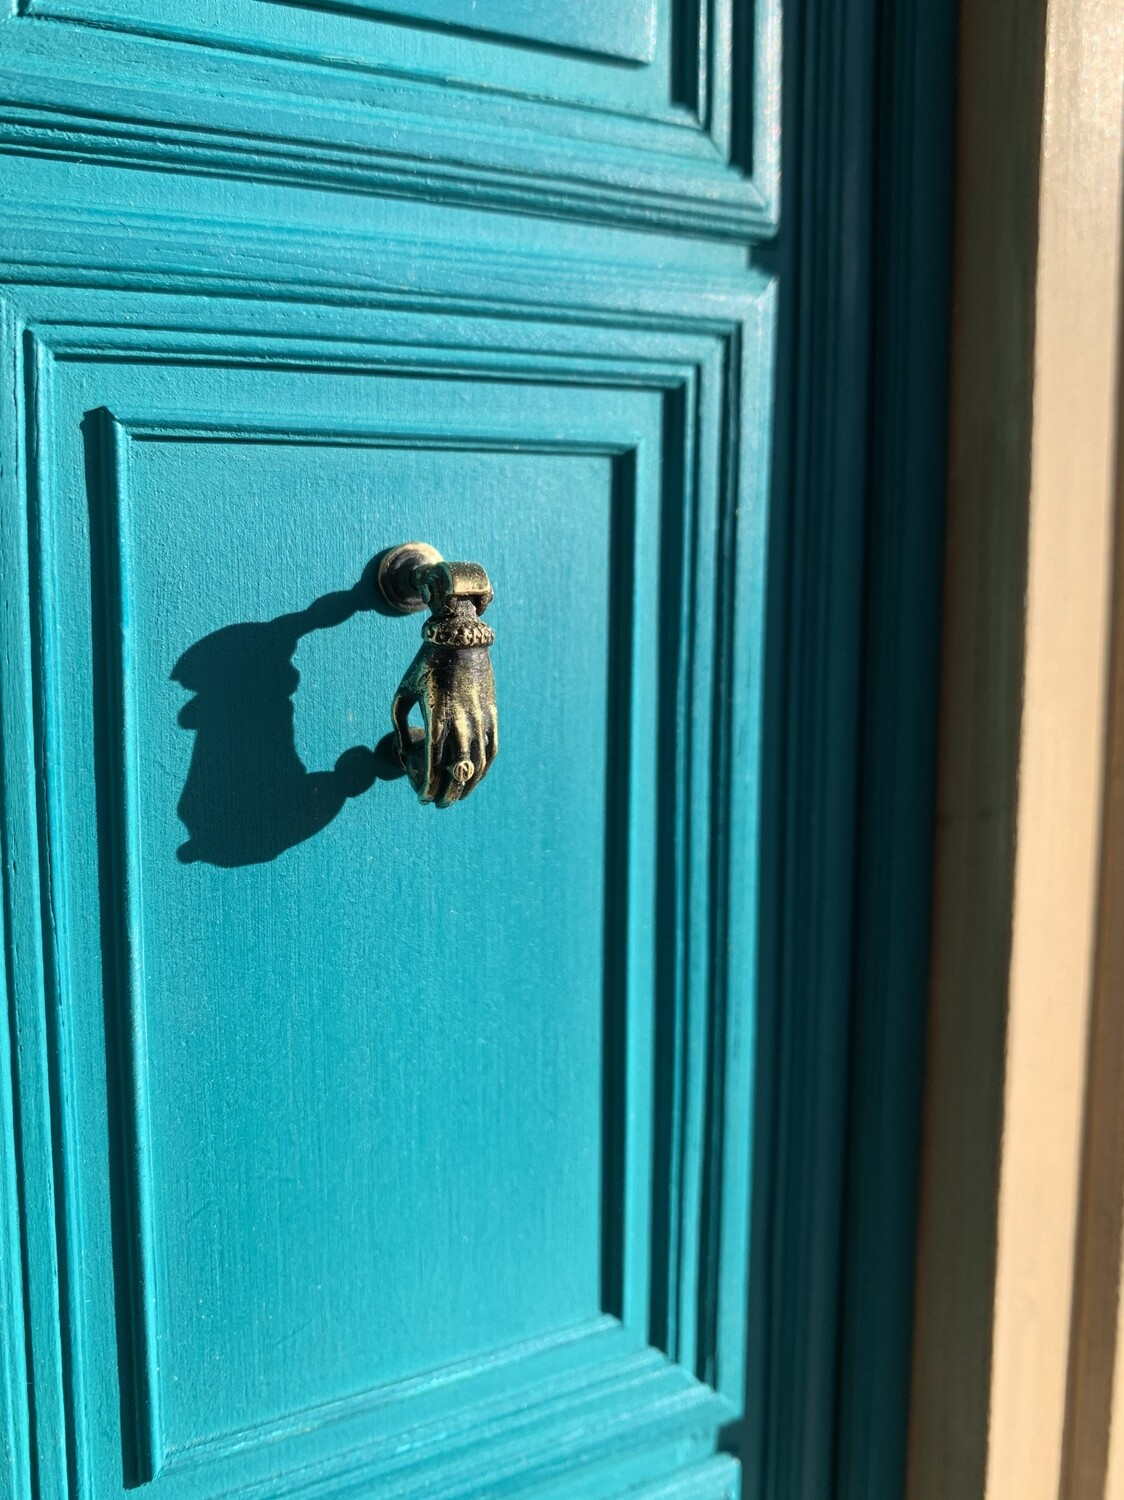 French hand shaped door knocker